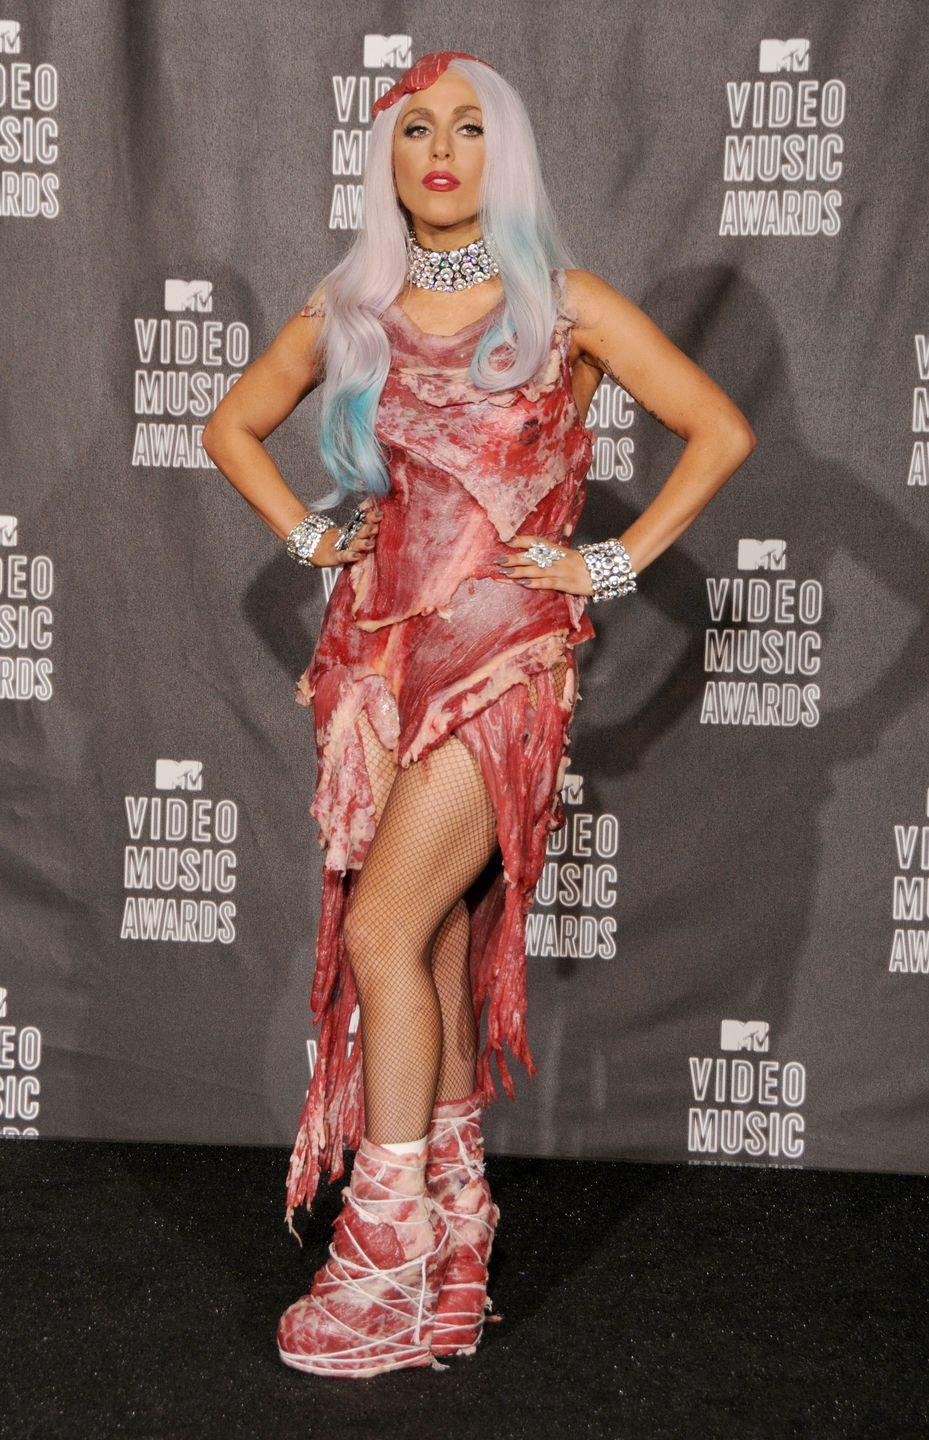 <p>Lady Gaga wore literal meat on her head, body, and feet to the VMAs in 2010. That is all. </p>